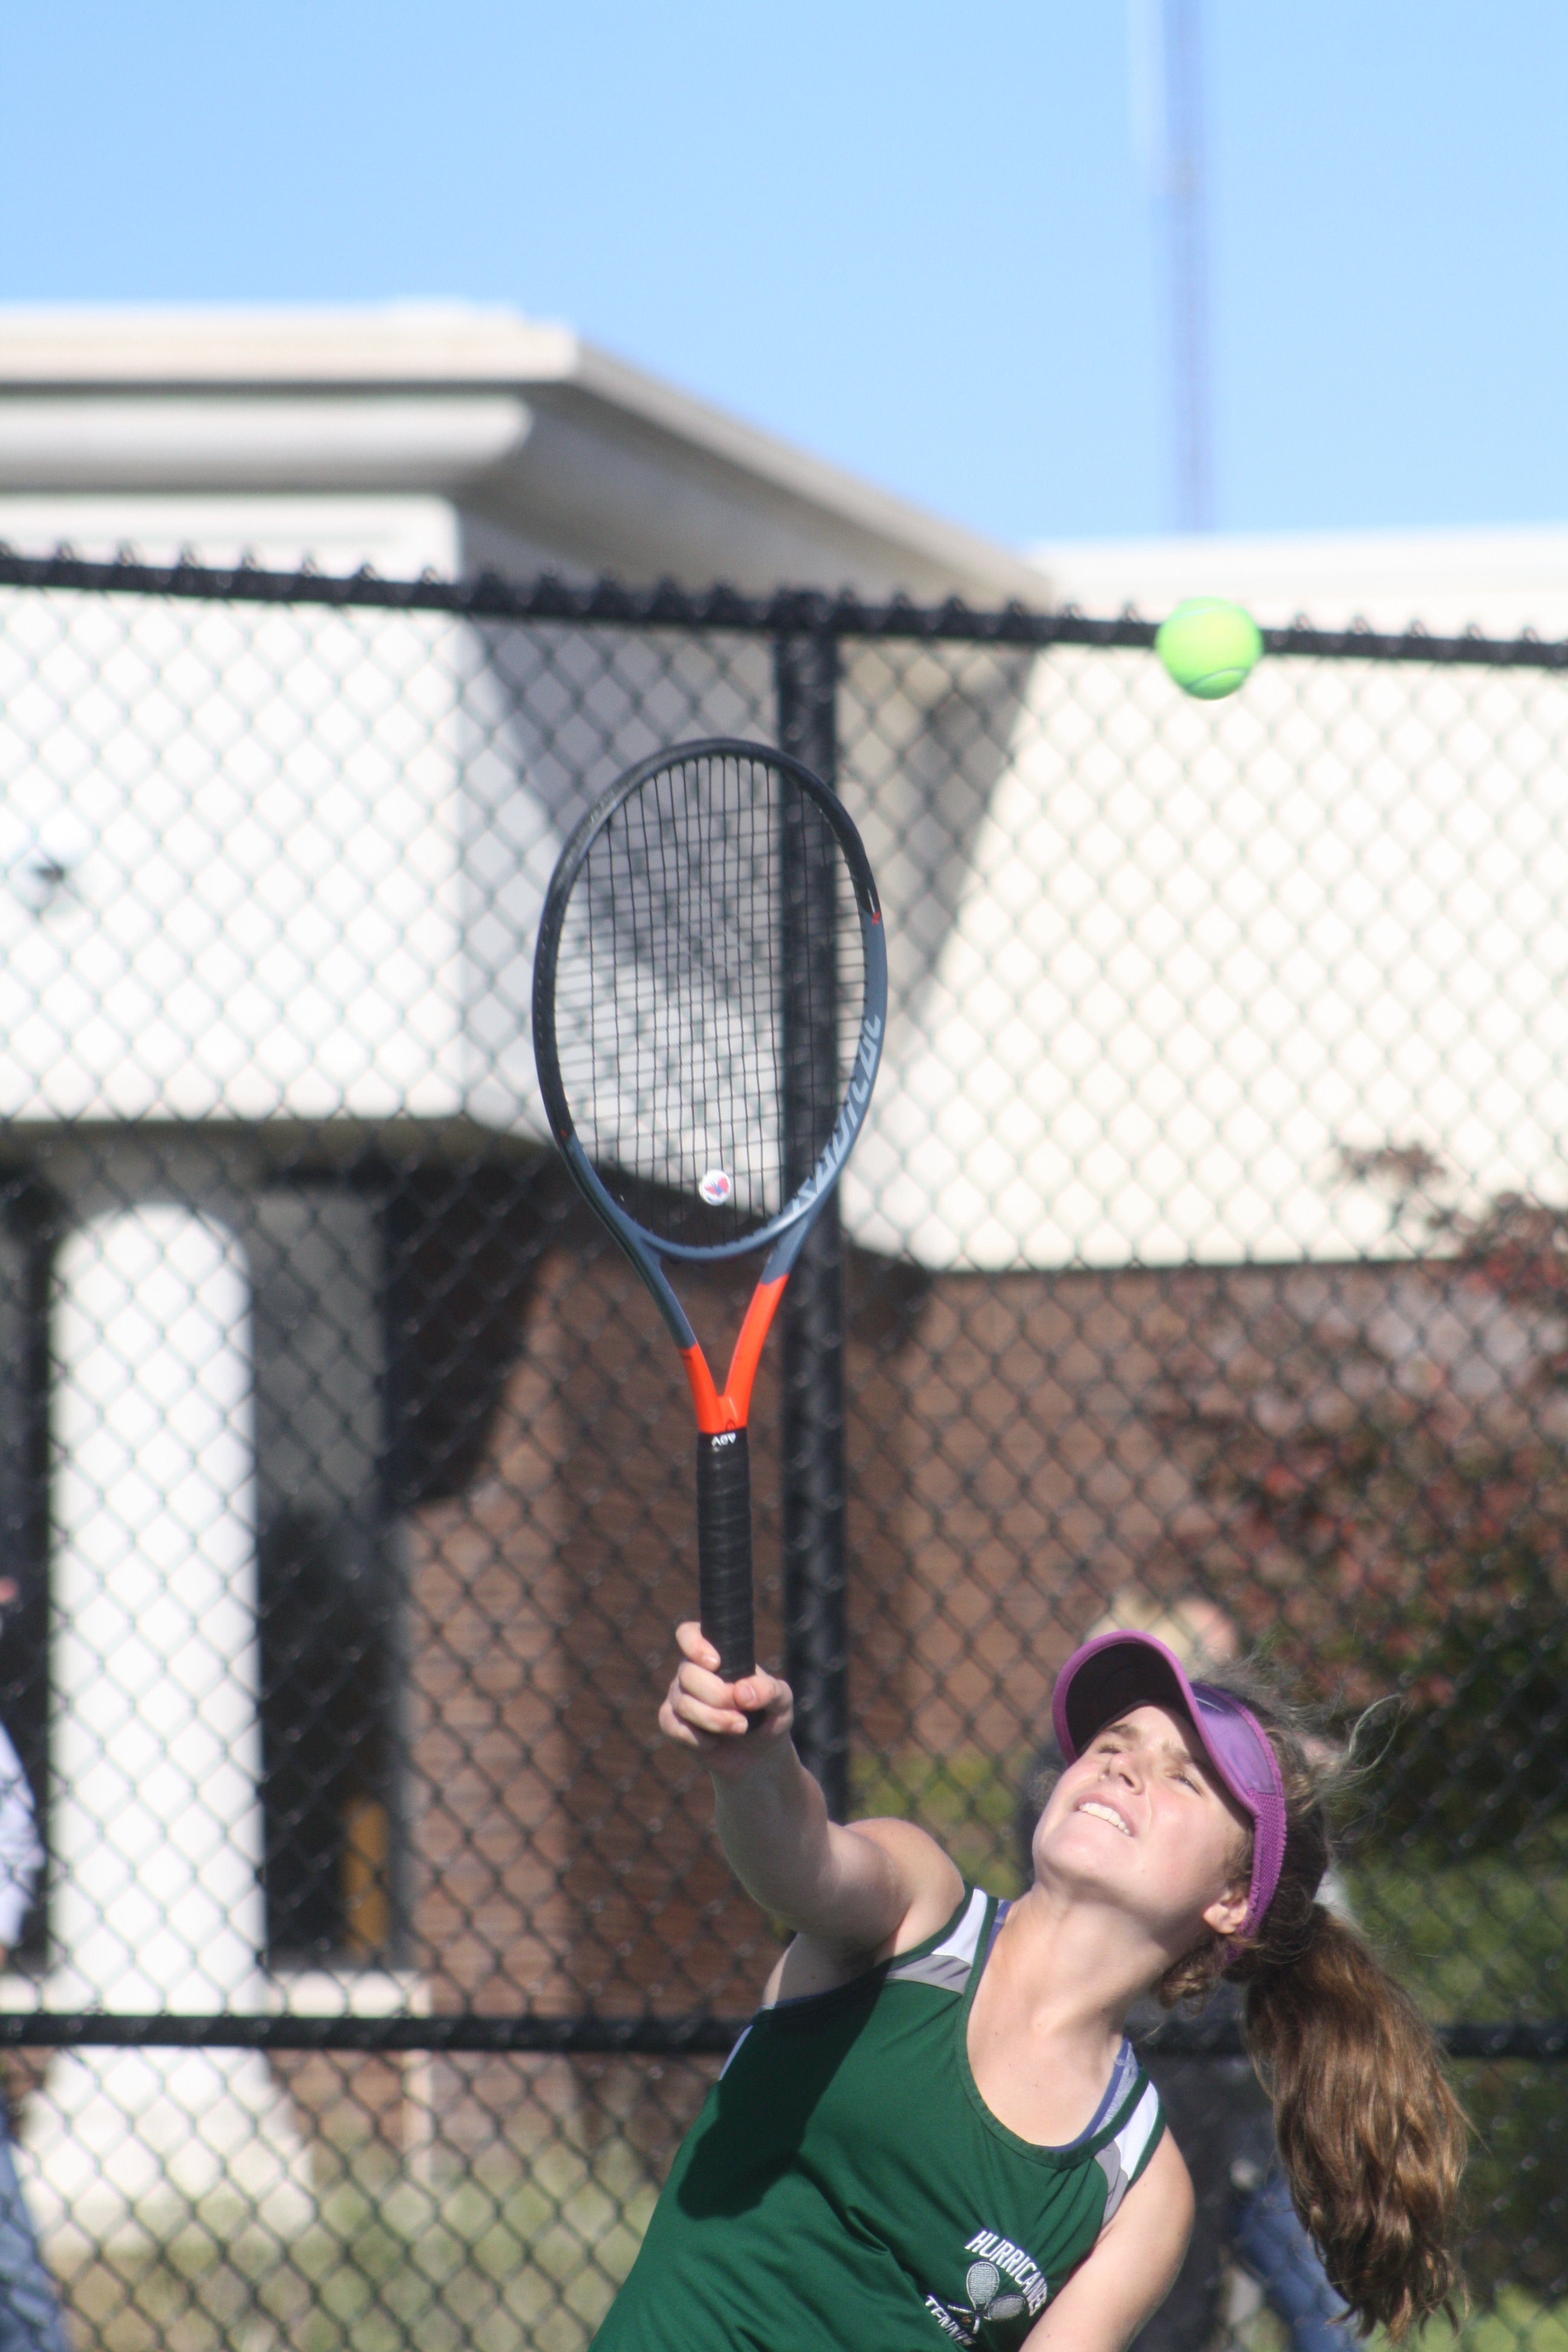 Julia Stabile's key point clinched the match for Westhampton Beach girls tennis on Monday afternoon.